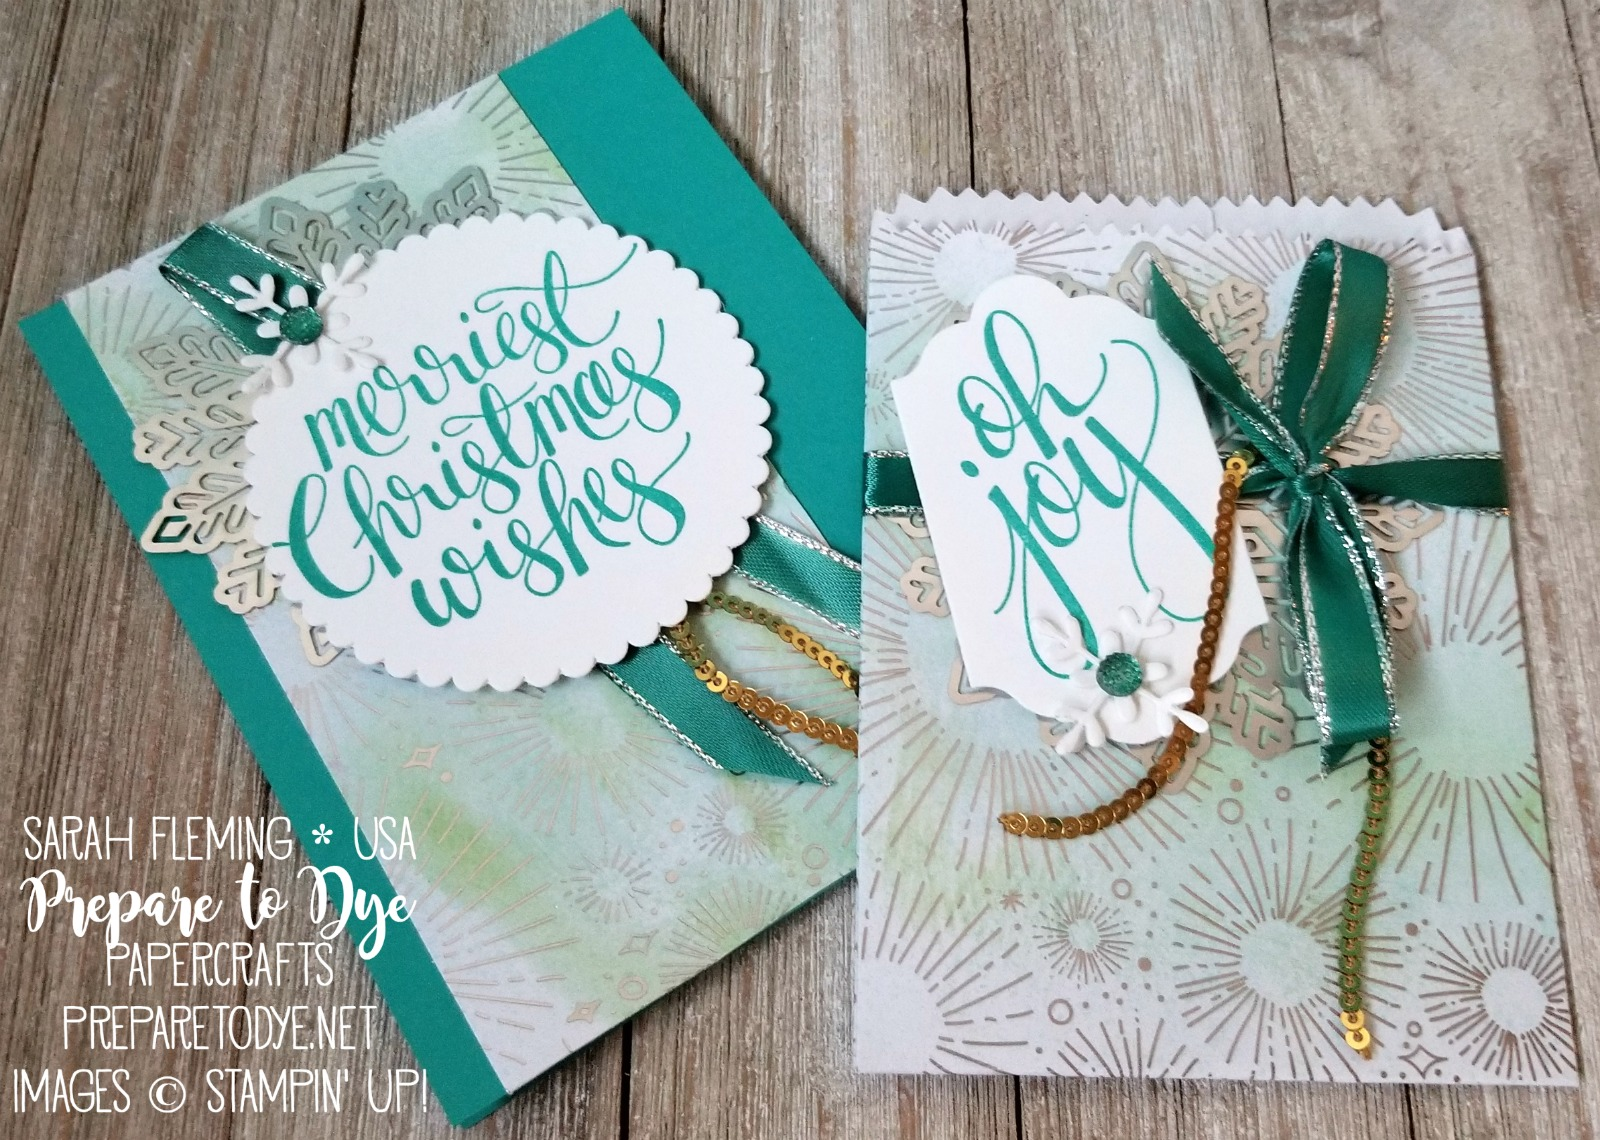 Stampin' Up! Mini Treat Bag thinlits with Year of Cheer Paper and Watercolor Christmas stamps - matching gift set with handmade card and treat bag - Sarah Fleming - Prepare to Dye Papercrafts